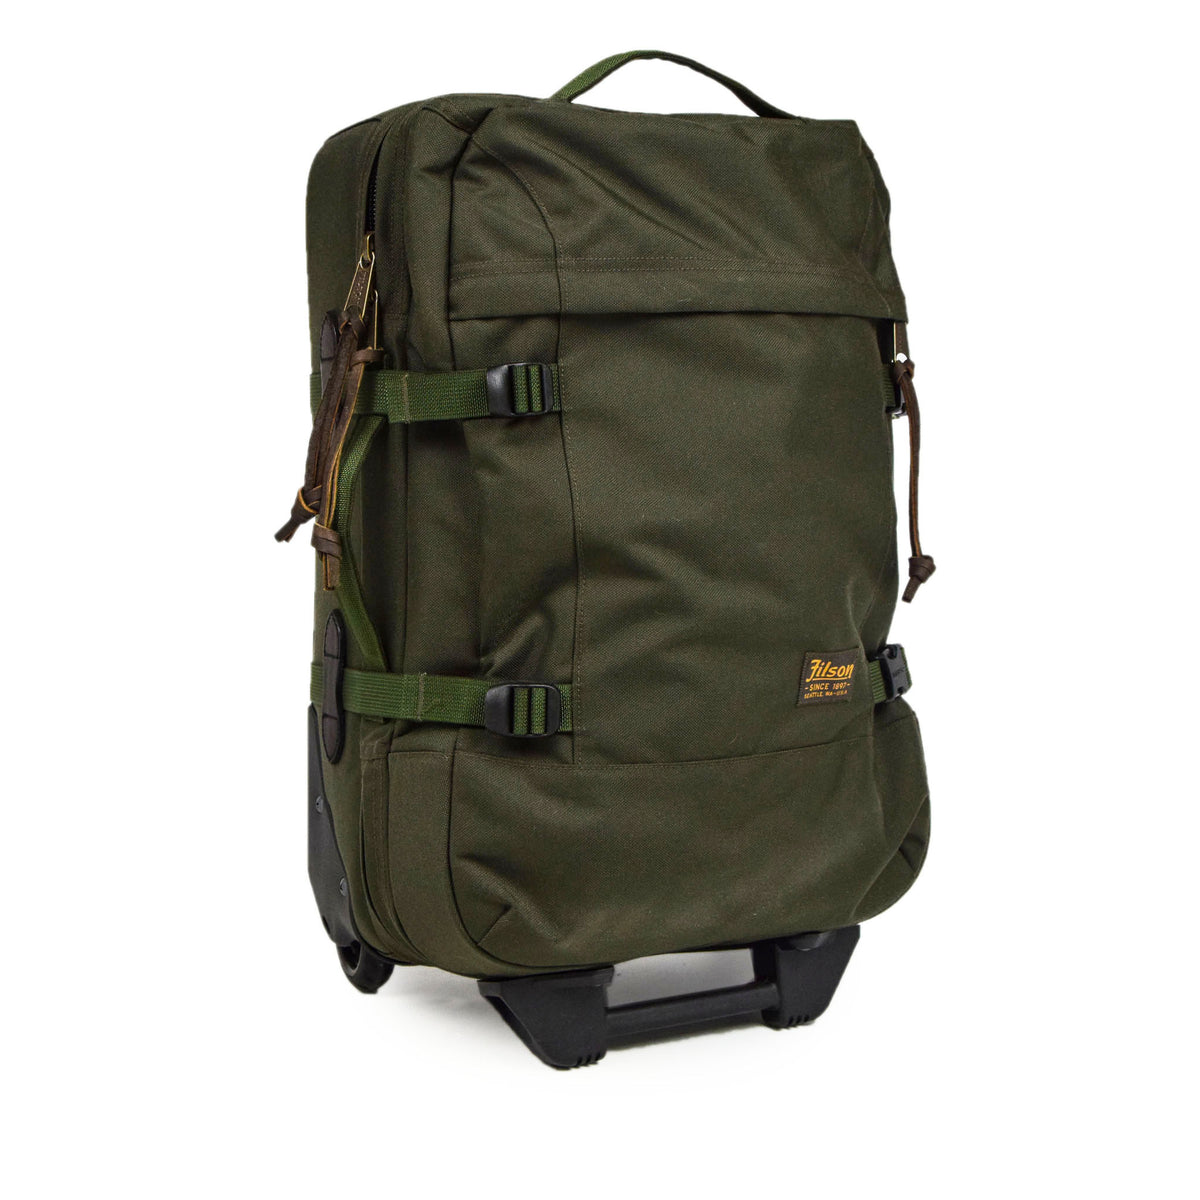 Filson Dryden Cordura Nylon 2-Wheel Carry-on Bag side